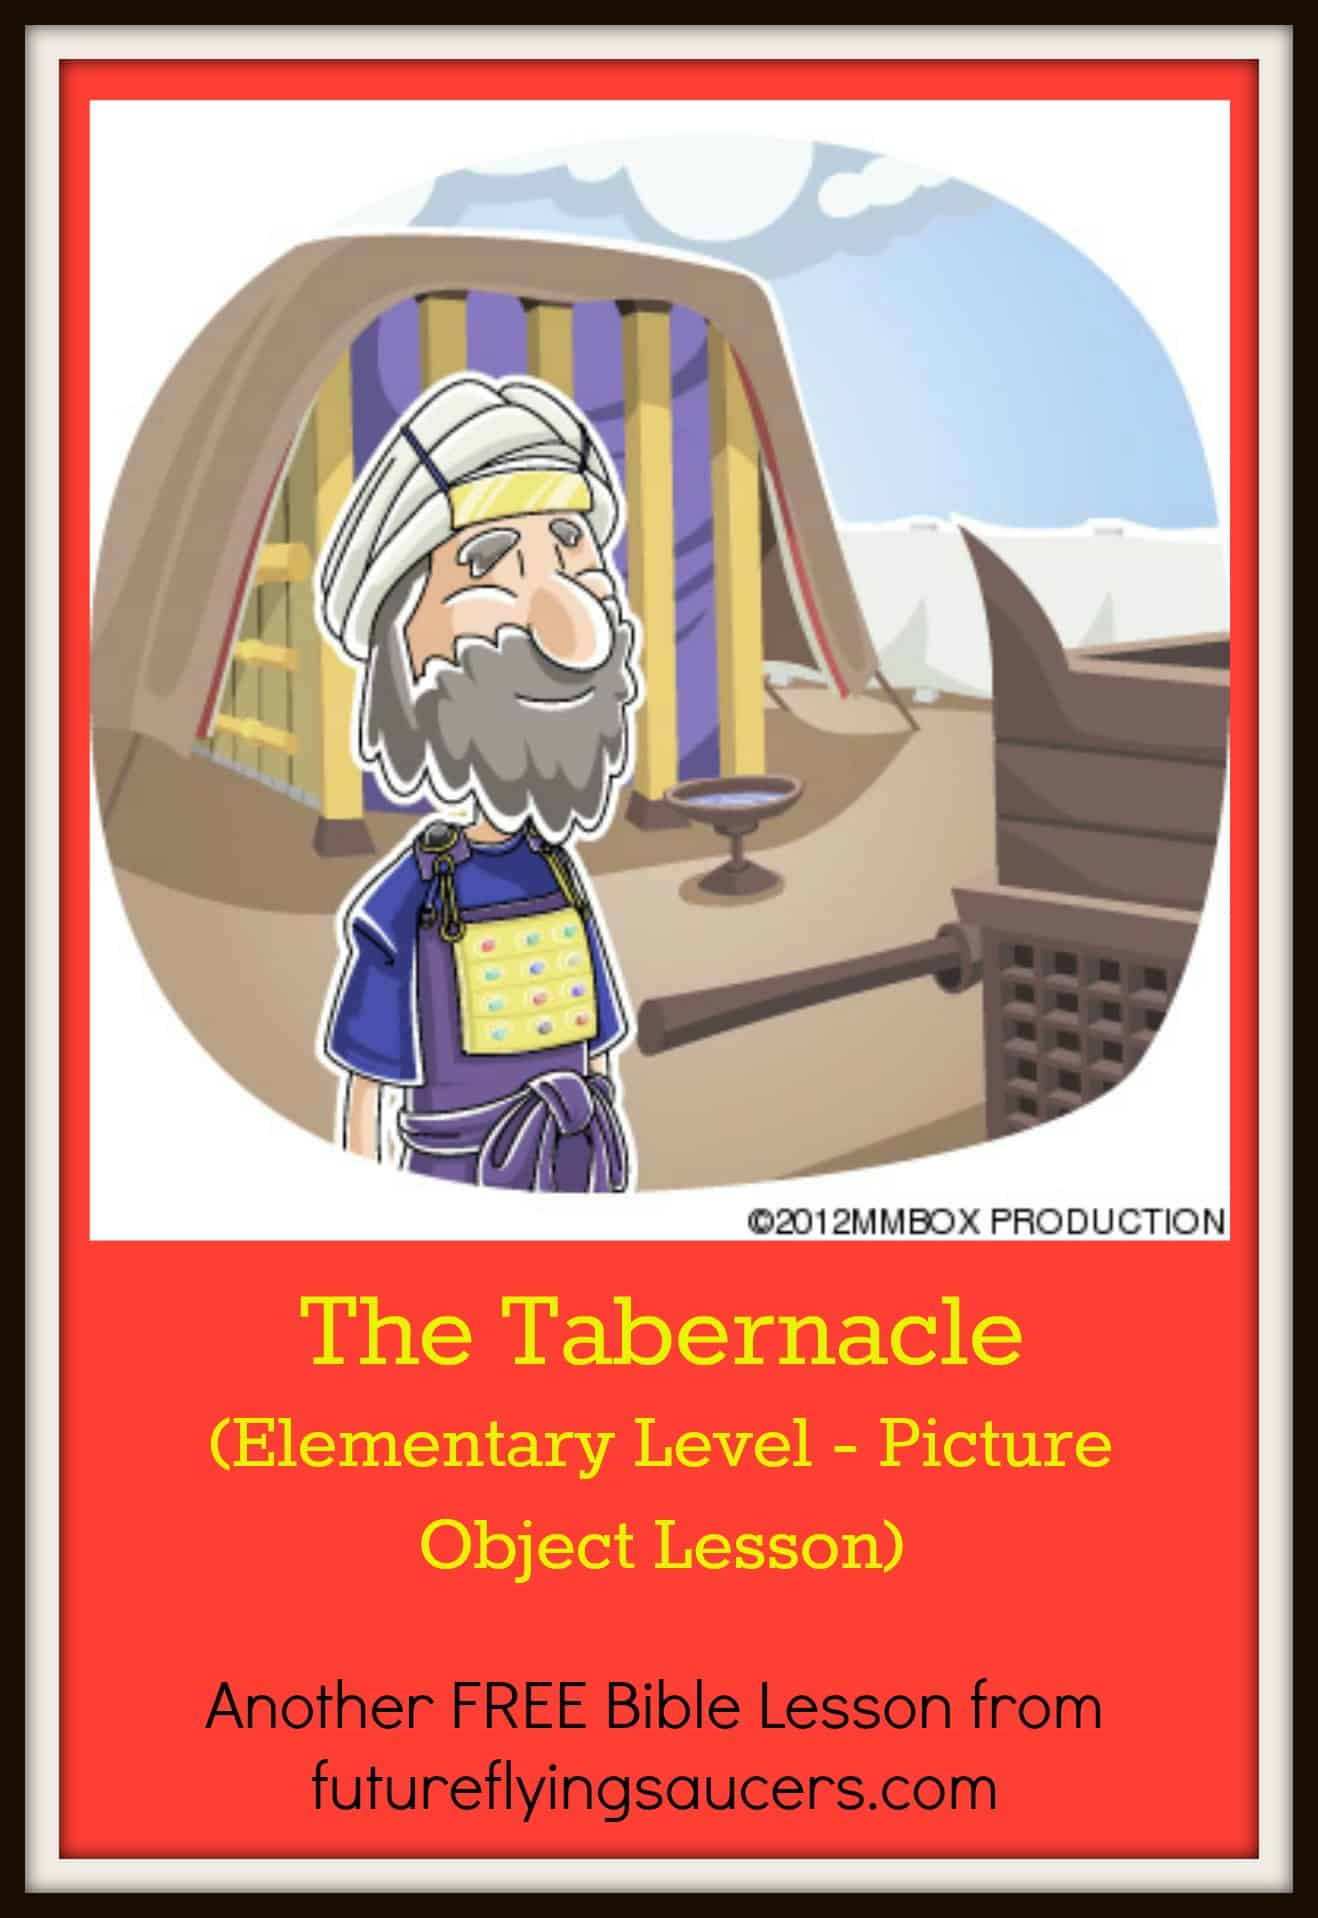 The Tabernacle Elementary Level